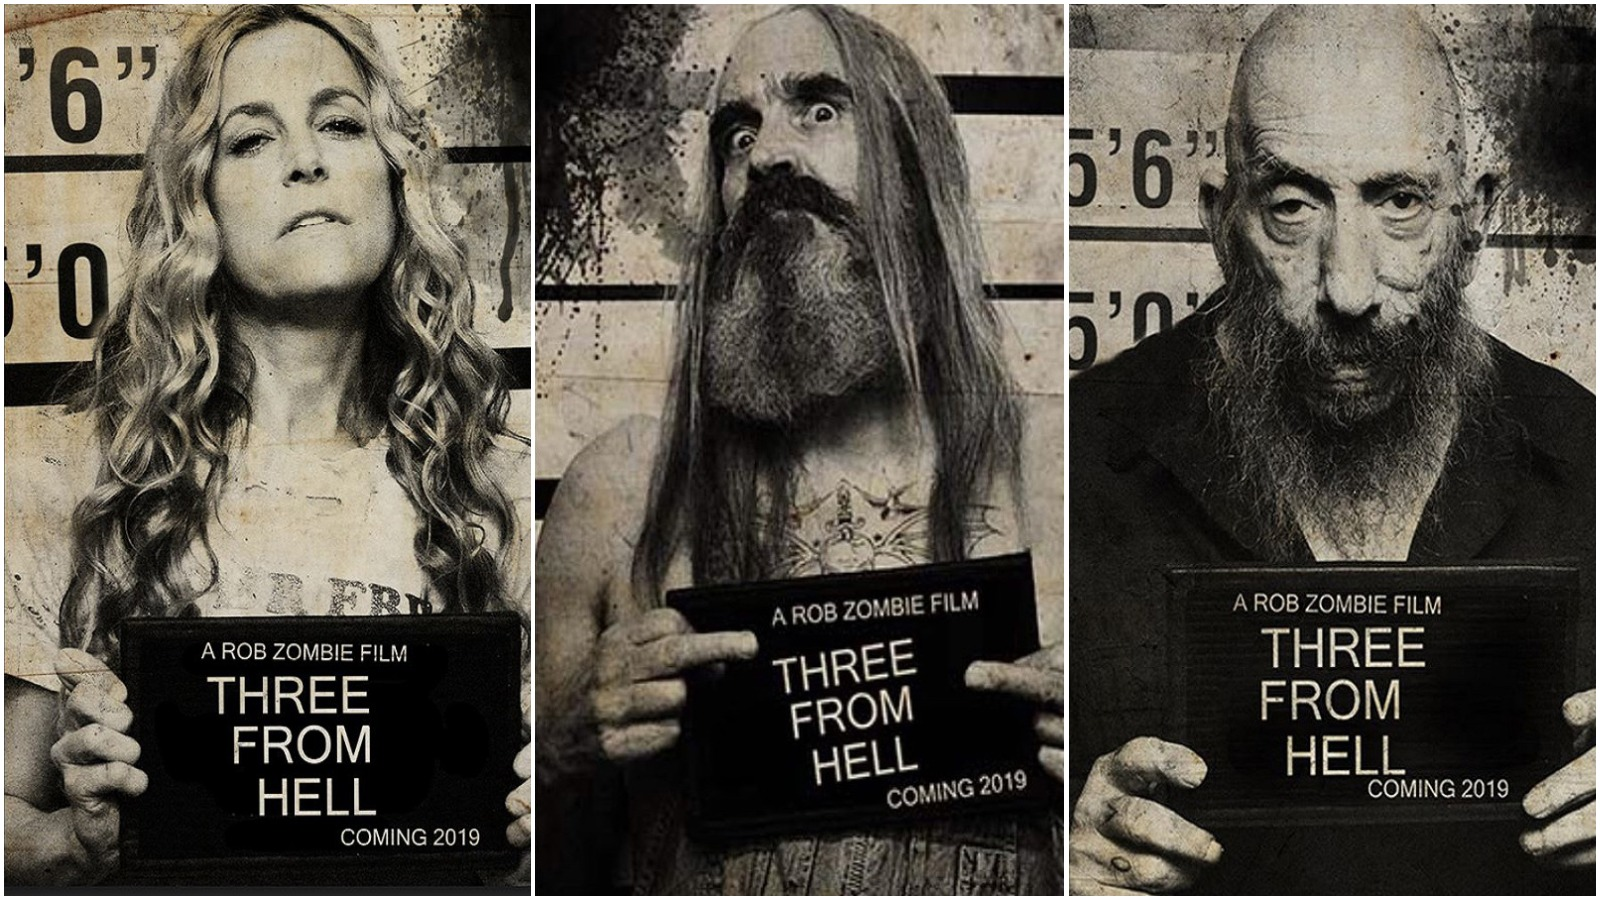 Here S The First Trailer For Rob Zombie S Sequel To The Devil S